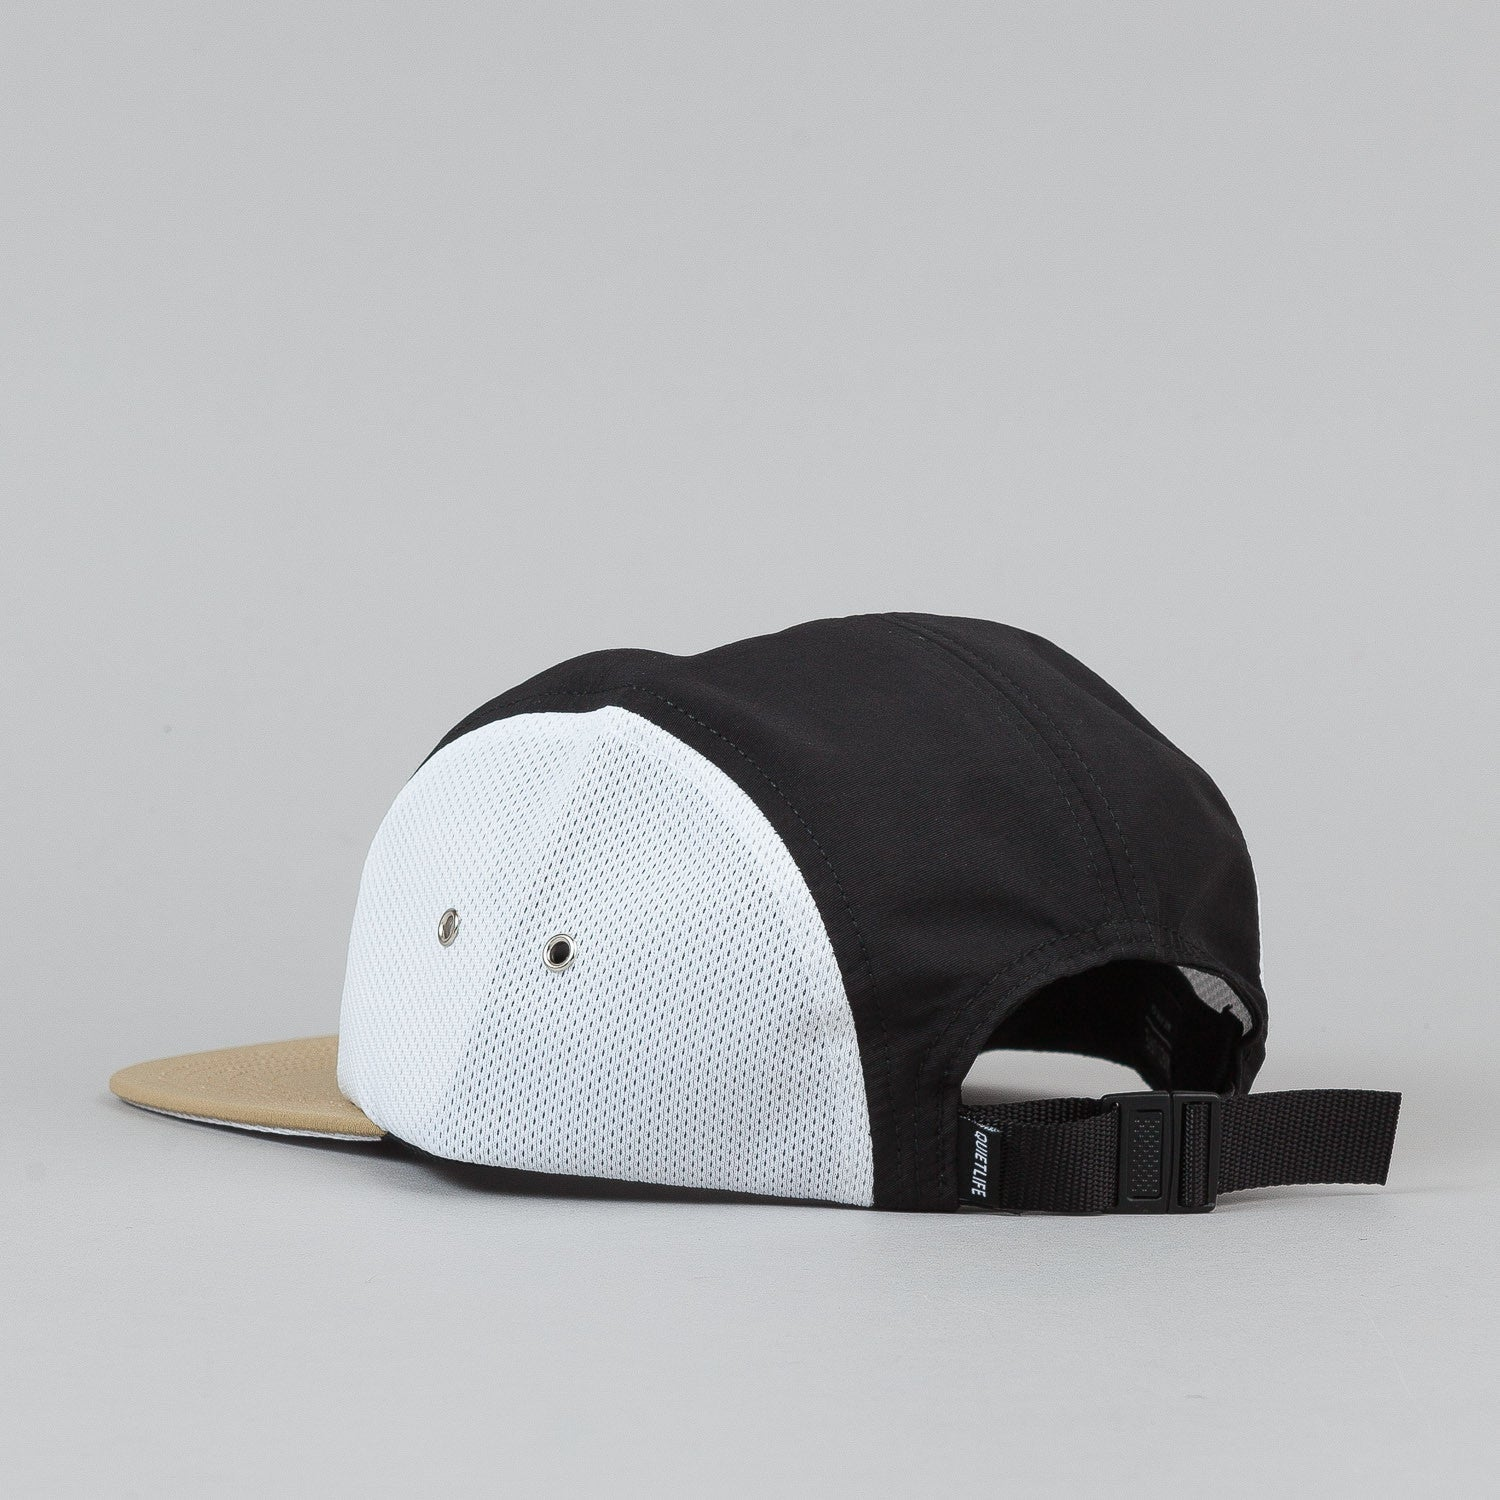 The Quiet Life Runner 5 Panel Cap - Tan Bill / Black Upper